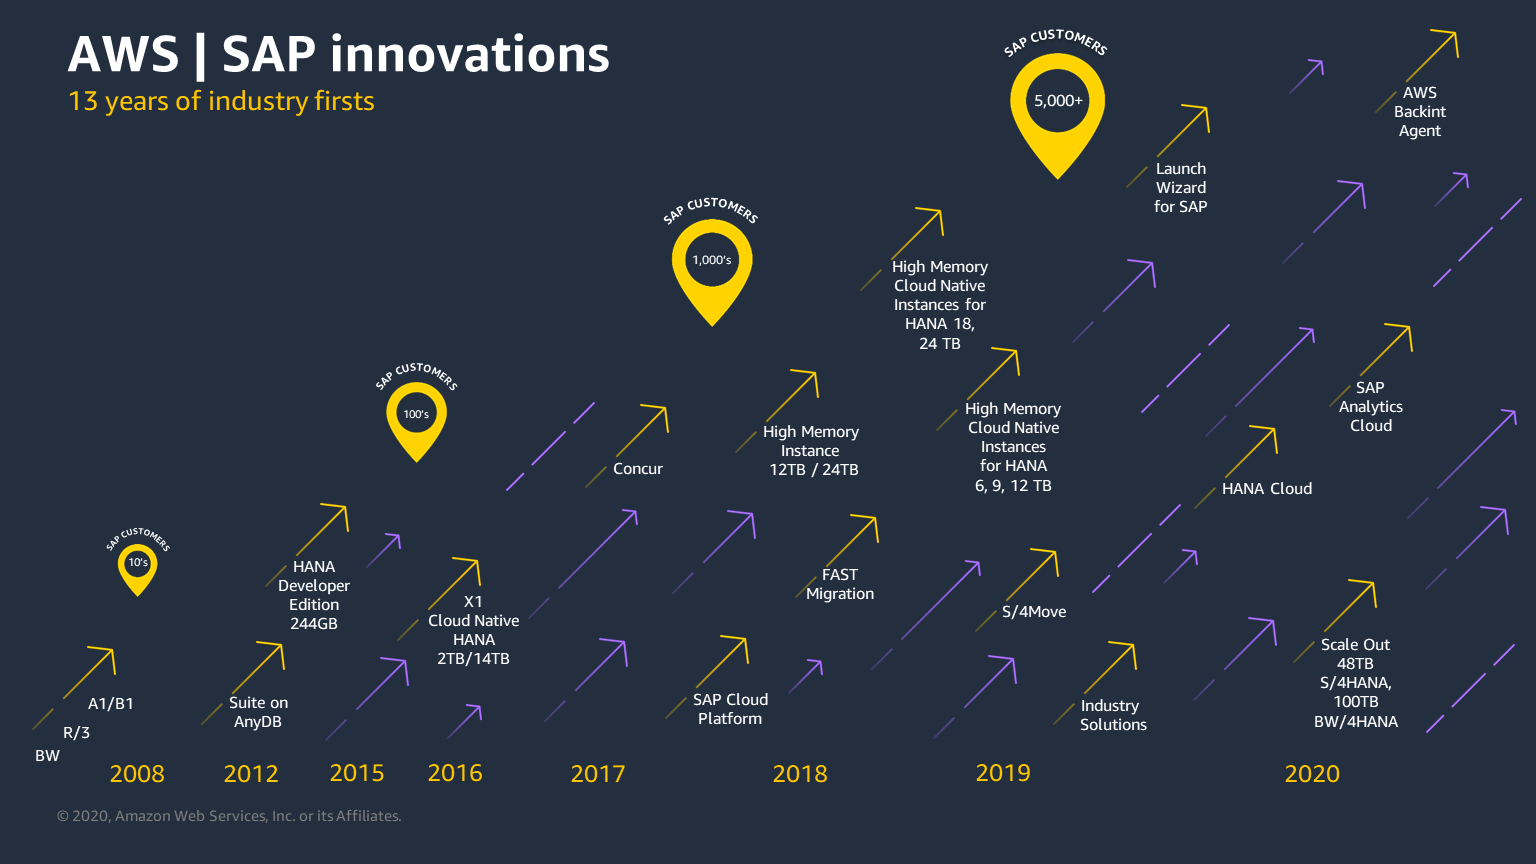 SAP has been working with AWS for over 13 years to launch a number of industry firsts.